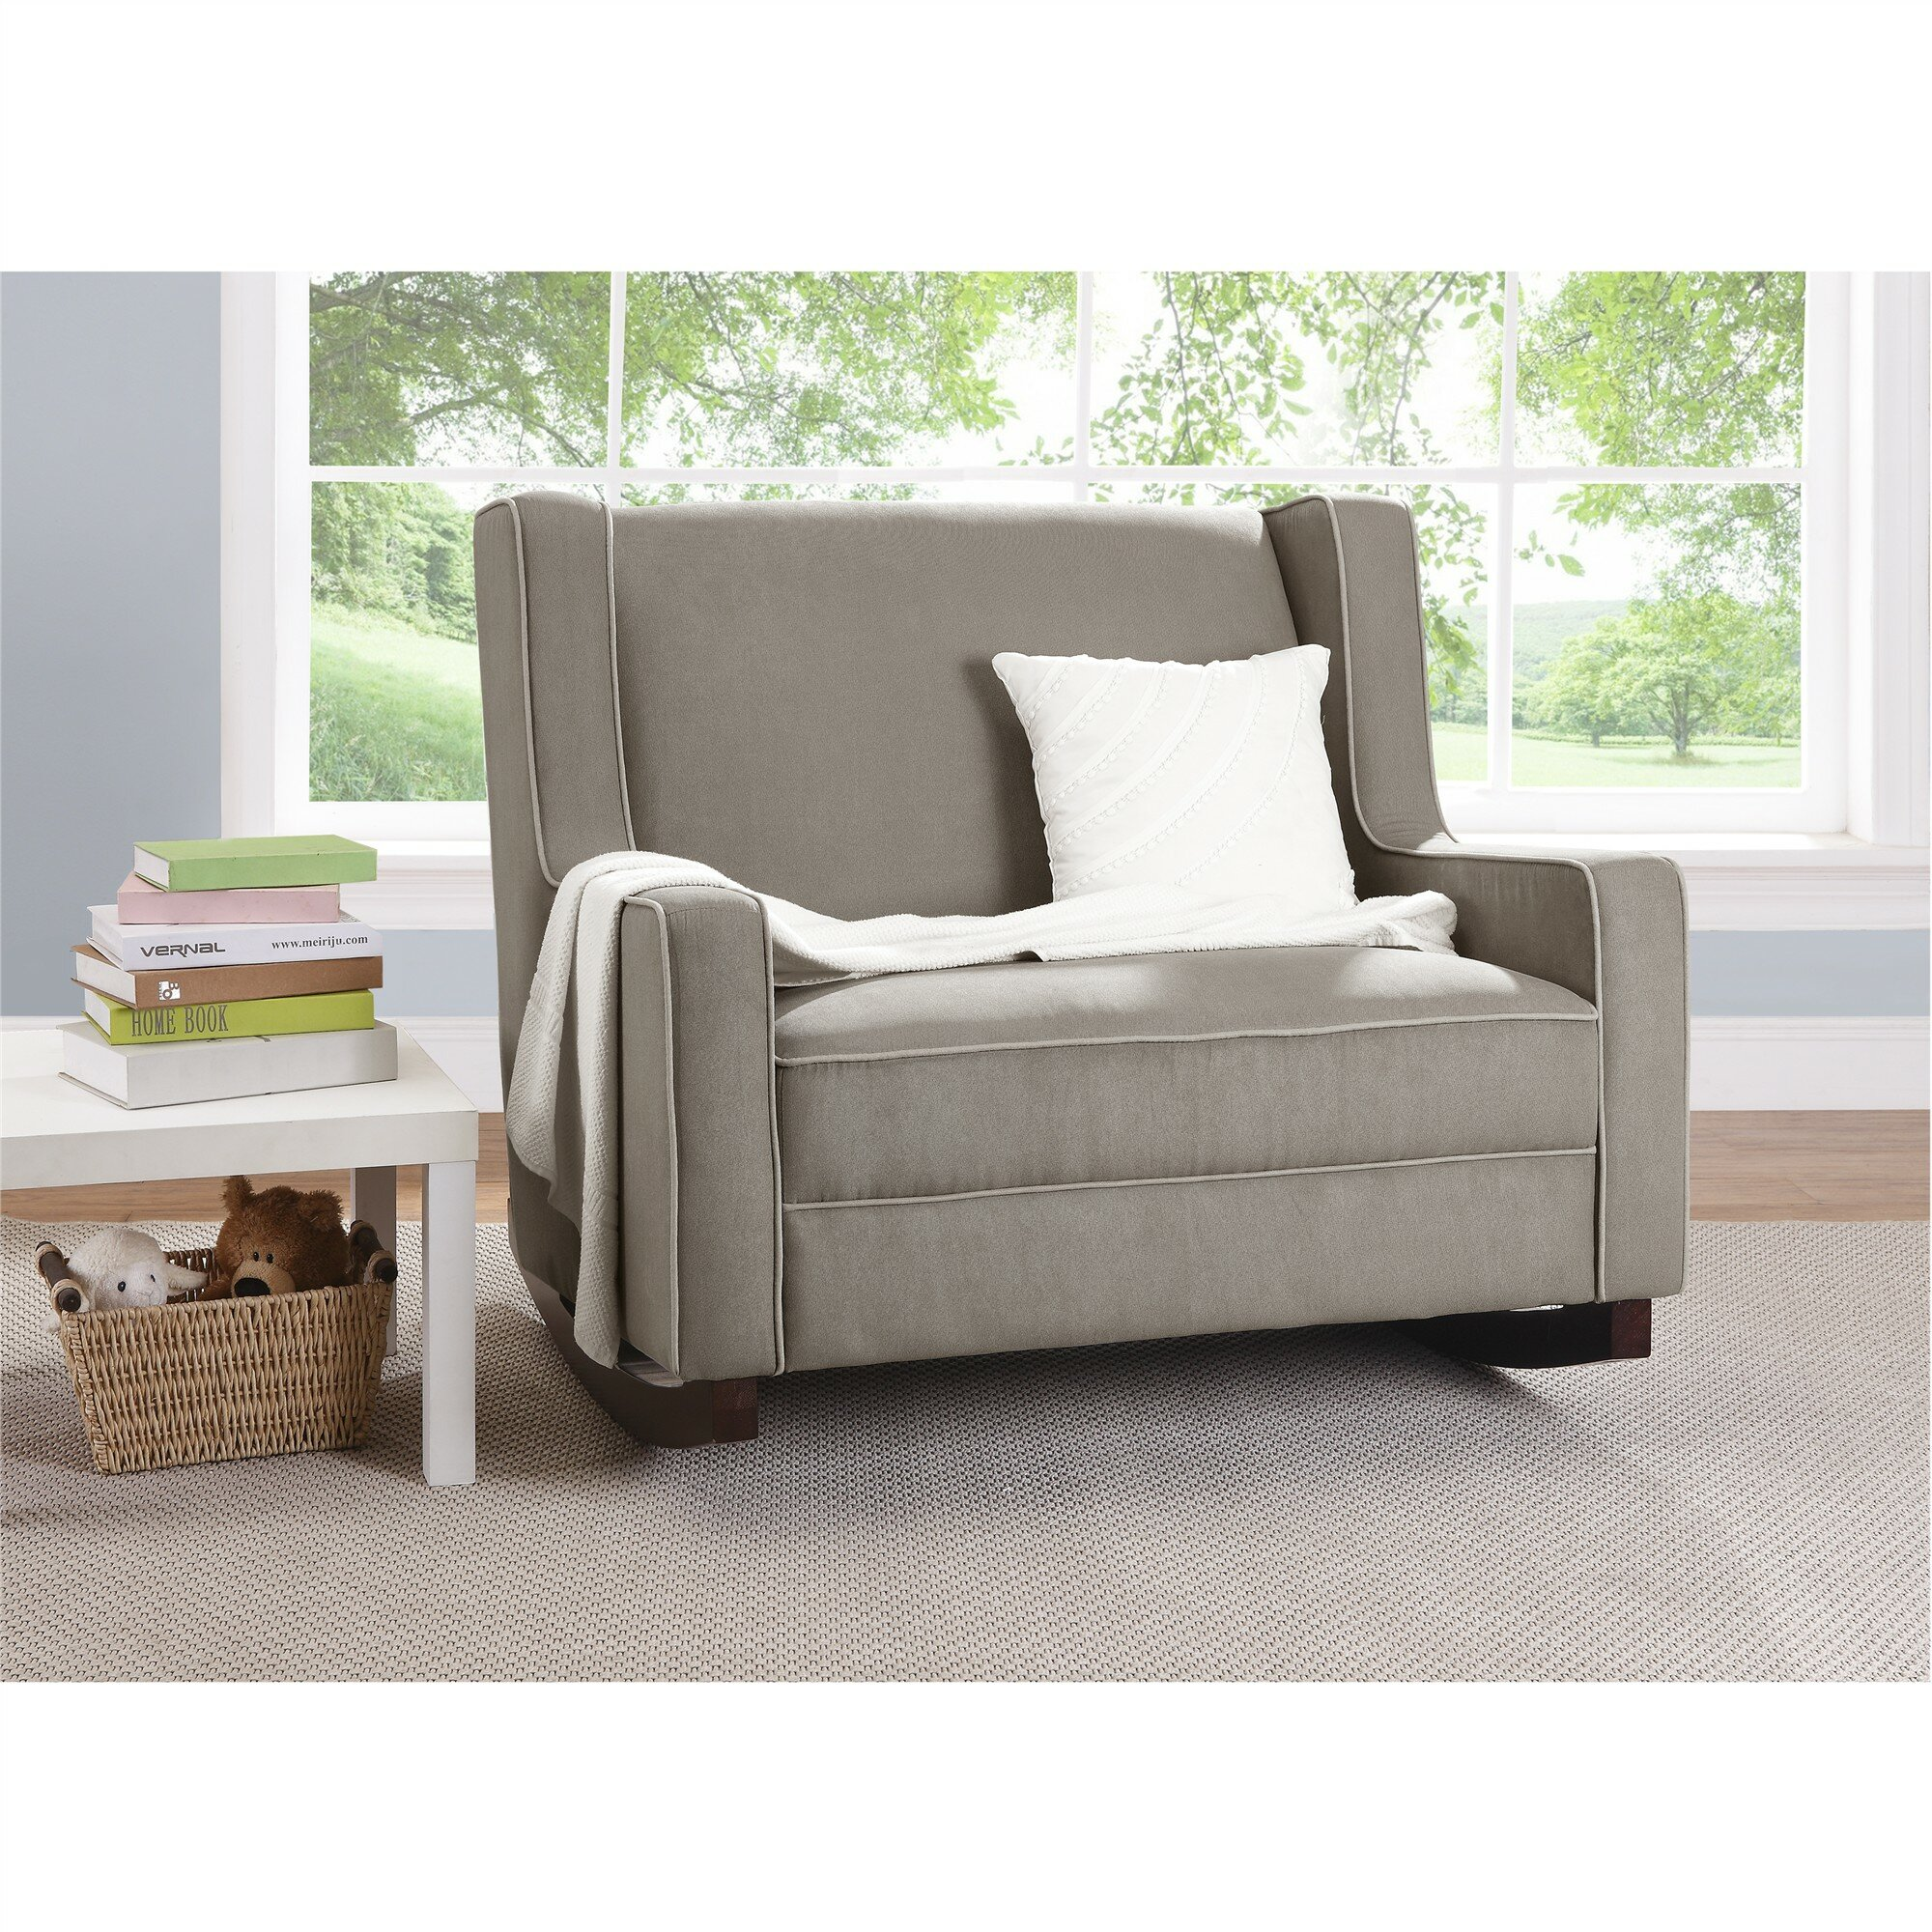 Gliders Ottomans Youll Love – Chair Nursery